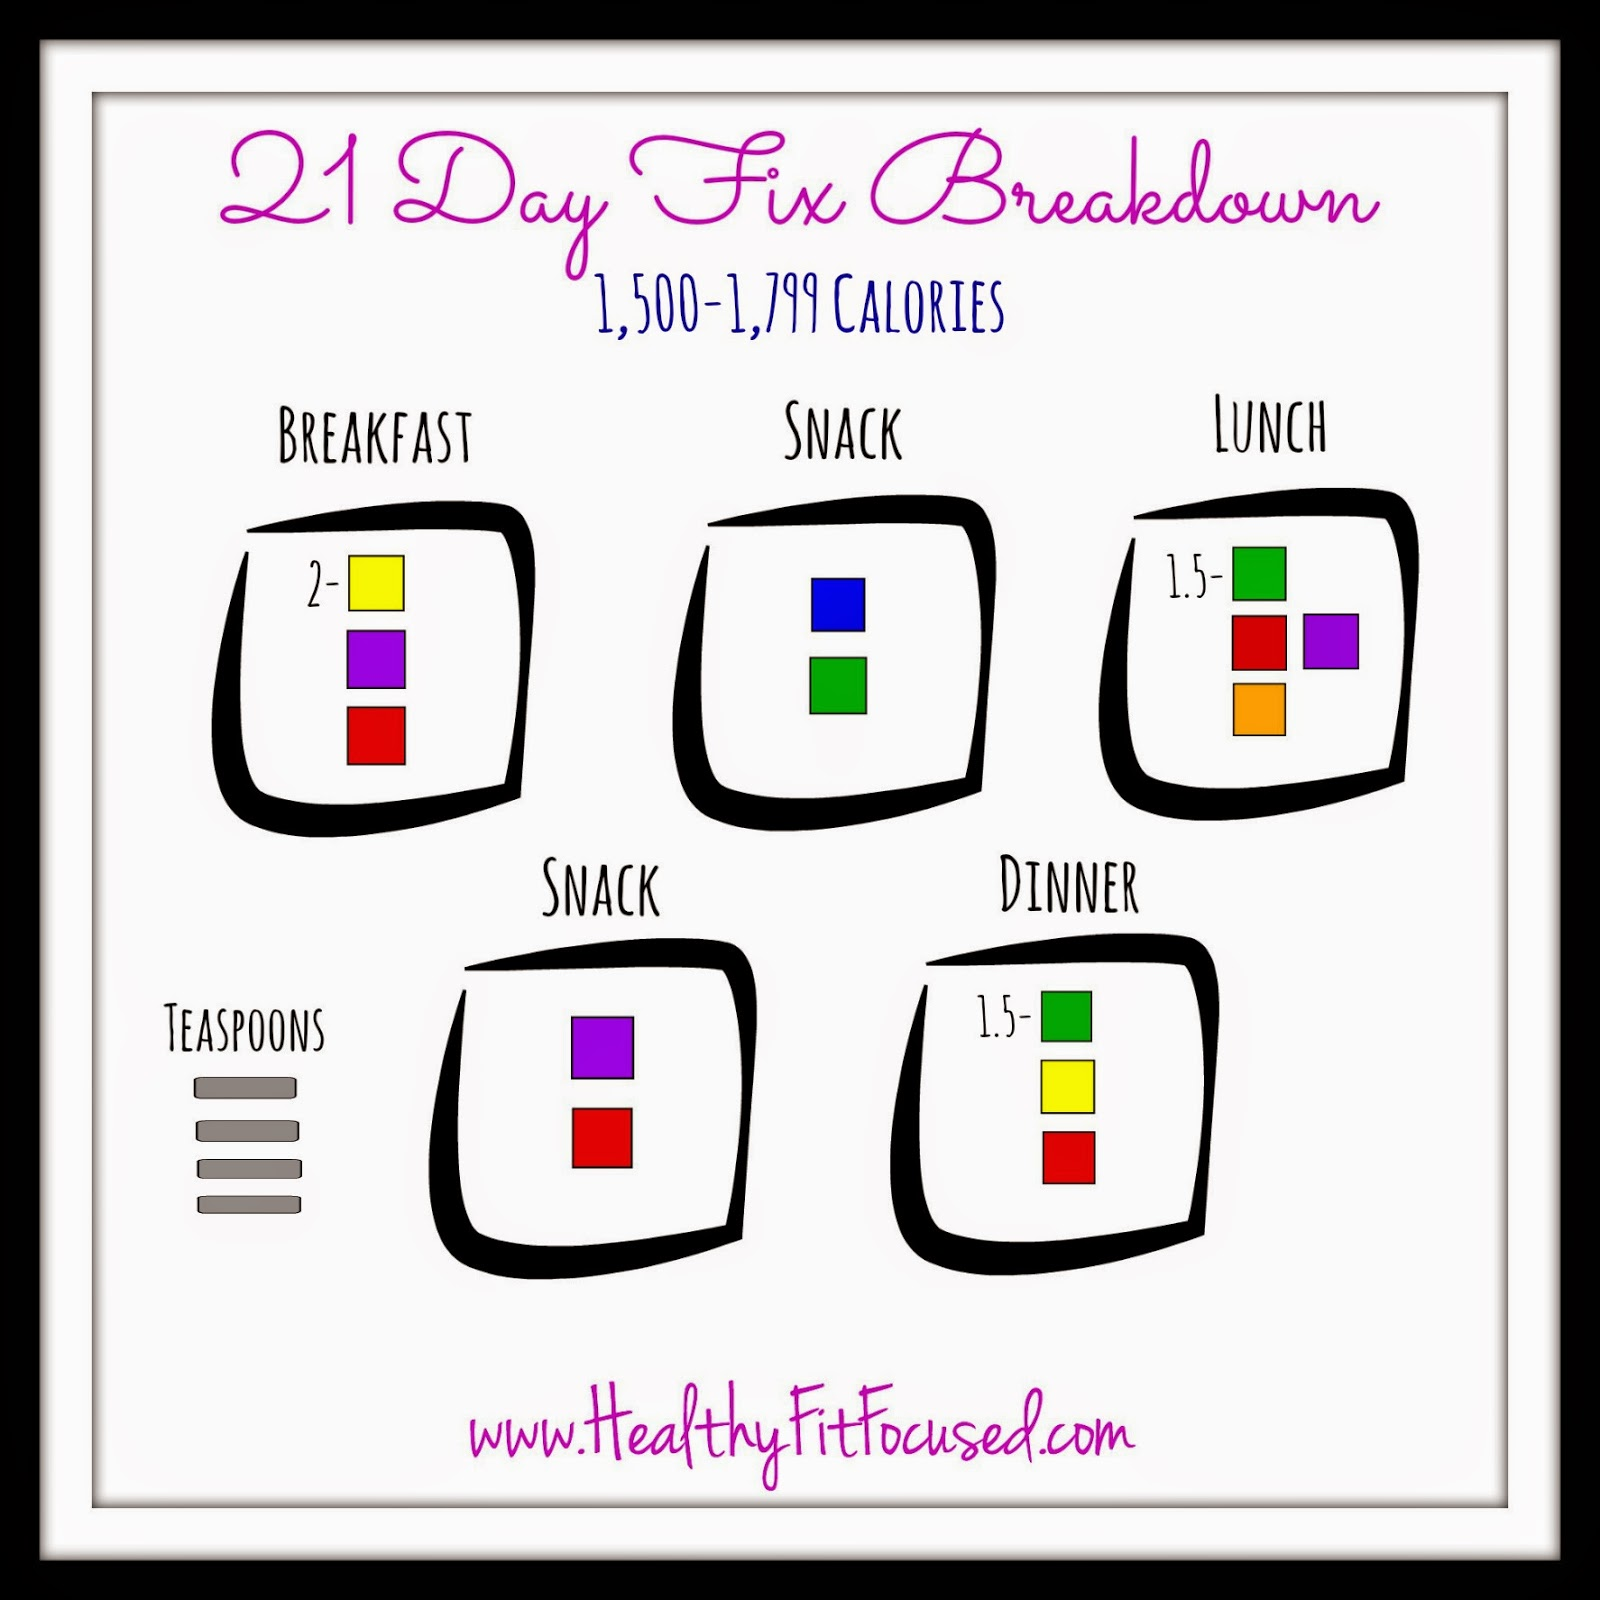 cheat sheet for 21 day diet fix